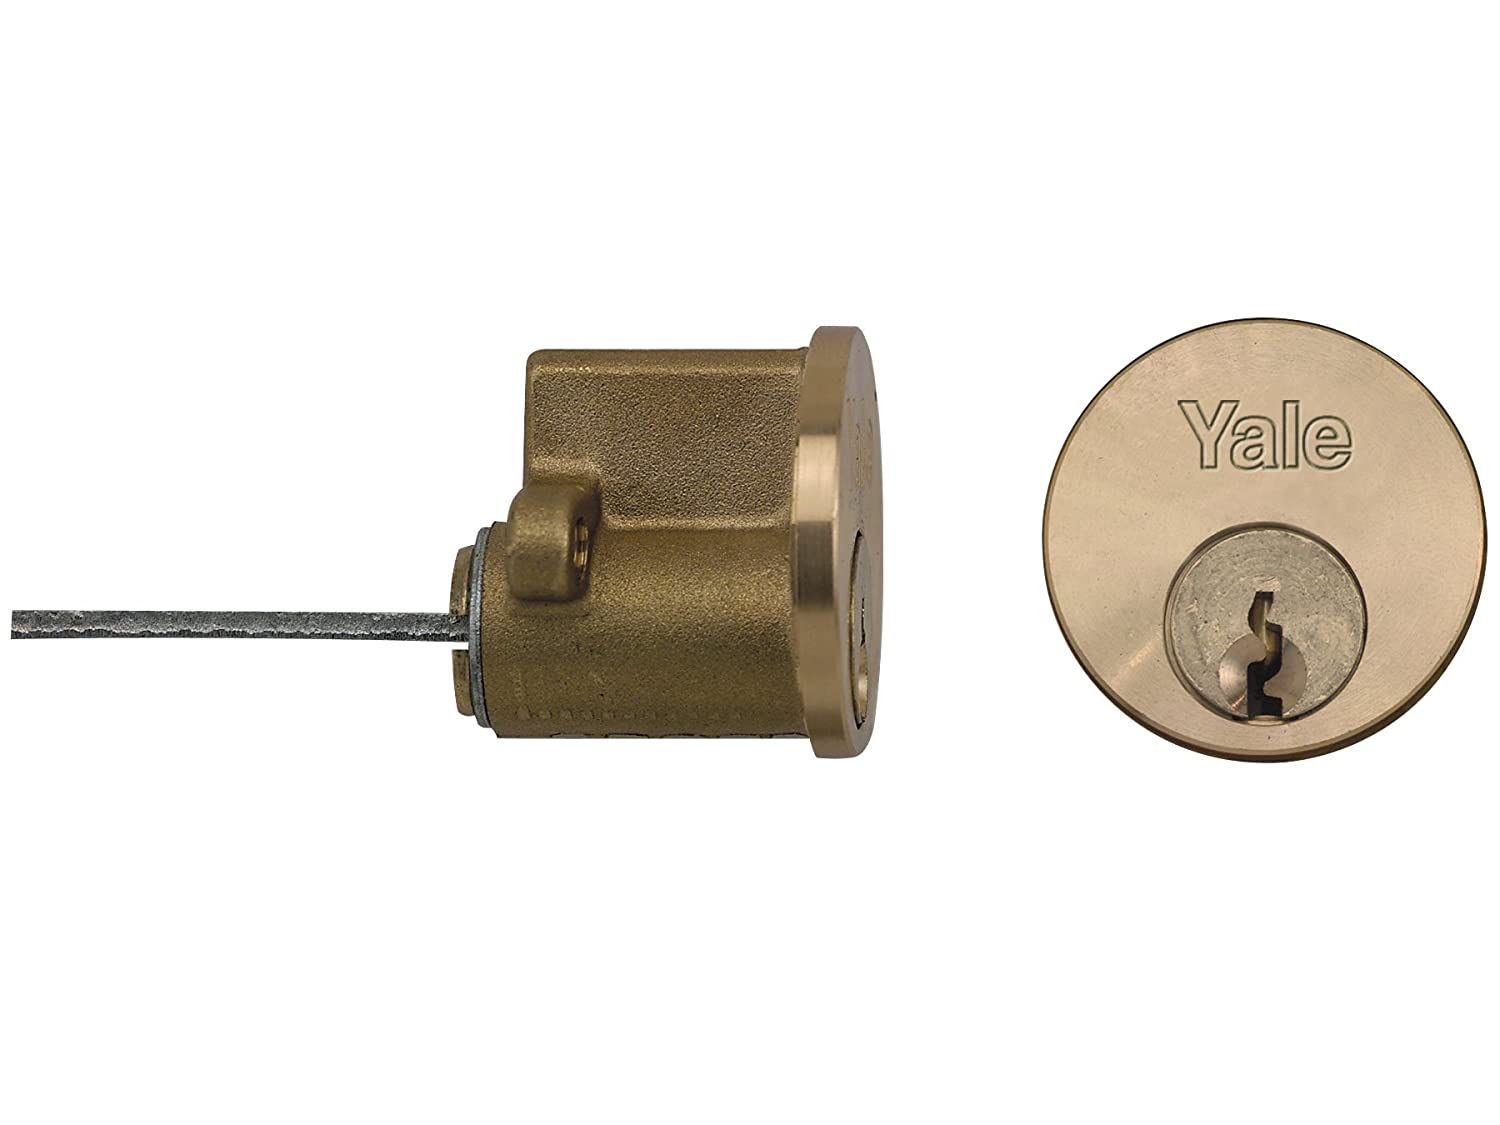 Yale Locks P1109 Replacement Rim Cylinder 4 Keys Polished Brass YAL4KP1109PB